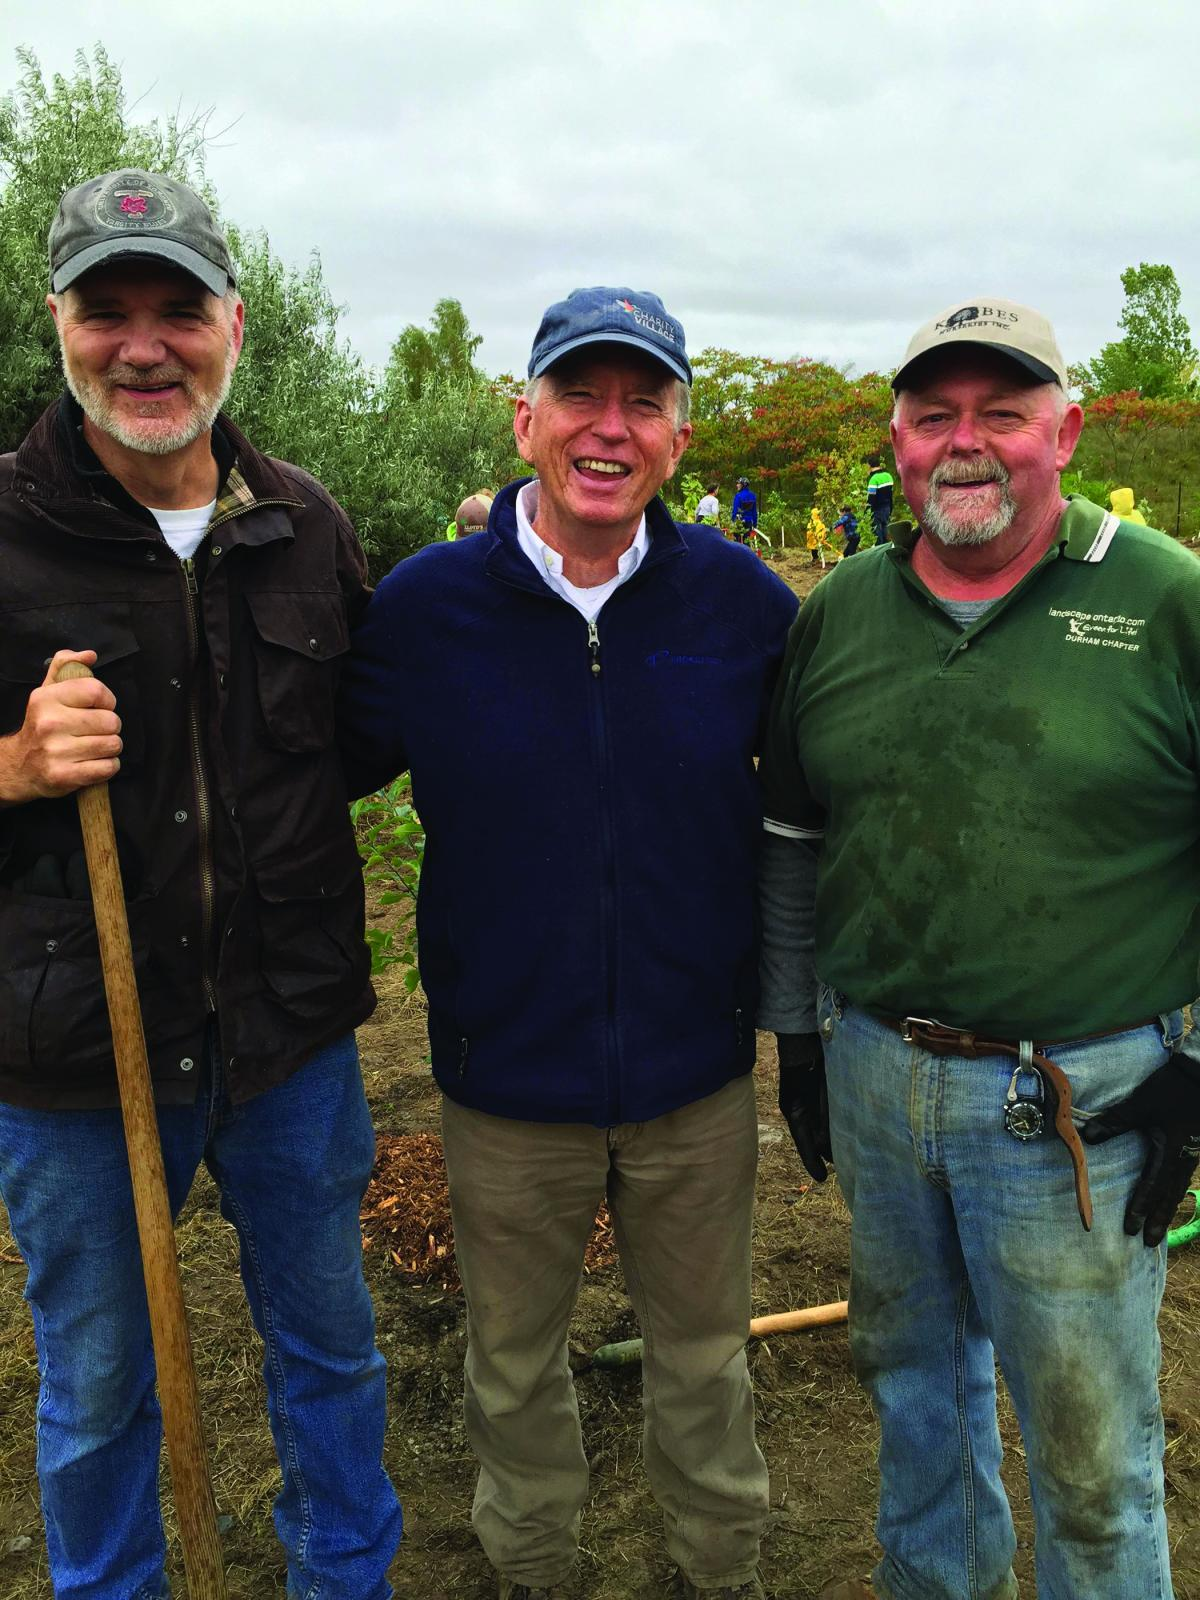 Mark Cullen, (centre) Board Chair of the Living Tribute, joined by cousin Bruce Cullen (left), recently retired as head groundskeeper of the Metro Toronto Zoo, and Norm Mills (right), President of Landscape Ontario's Durham Chapter.